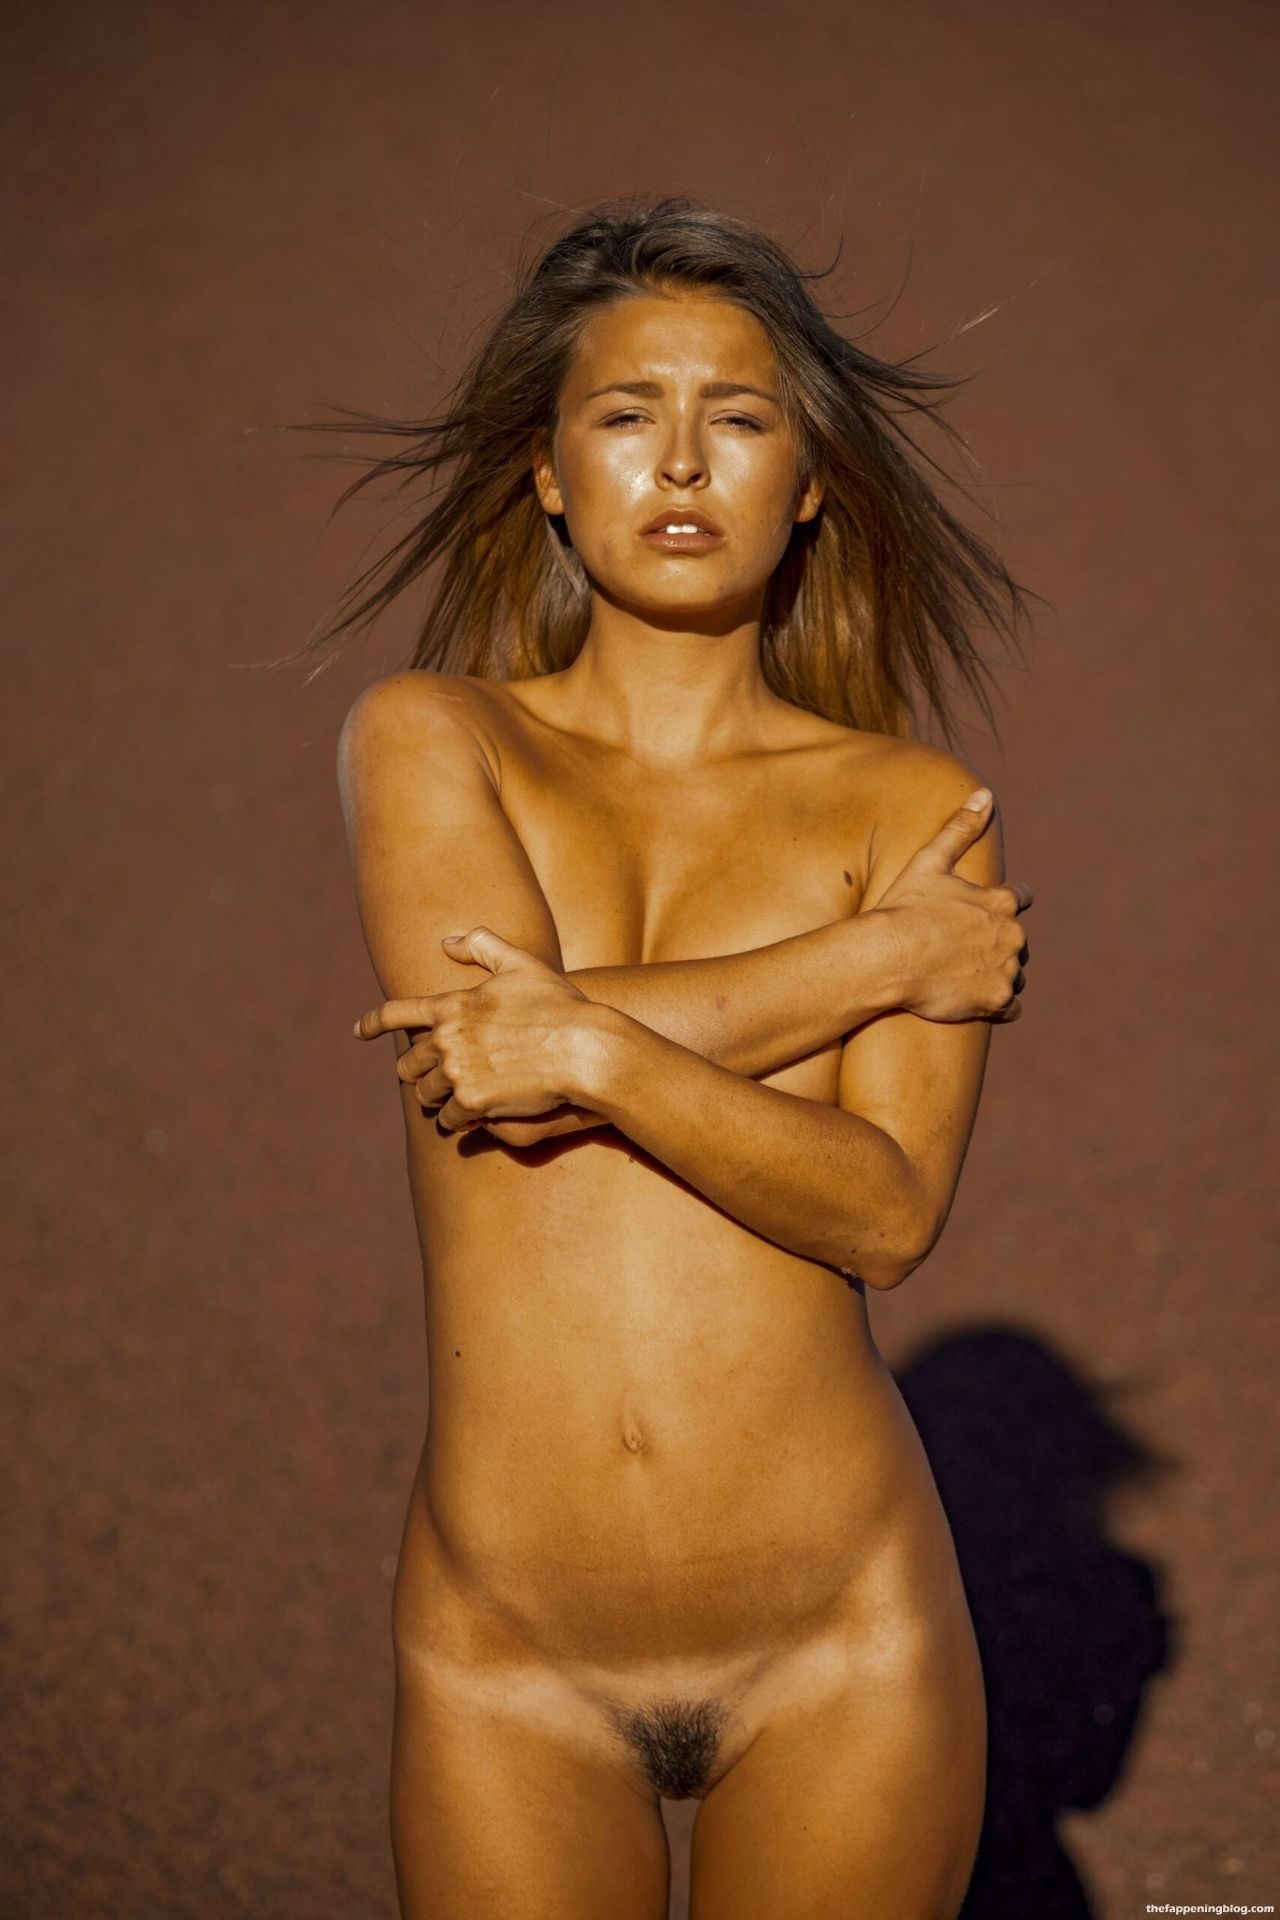 Marisa-Papen-Stunning-Naked-Body-29-scaled1-thefappeningblog.com_.jpg